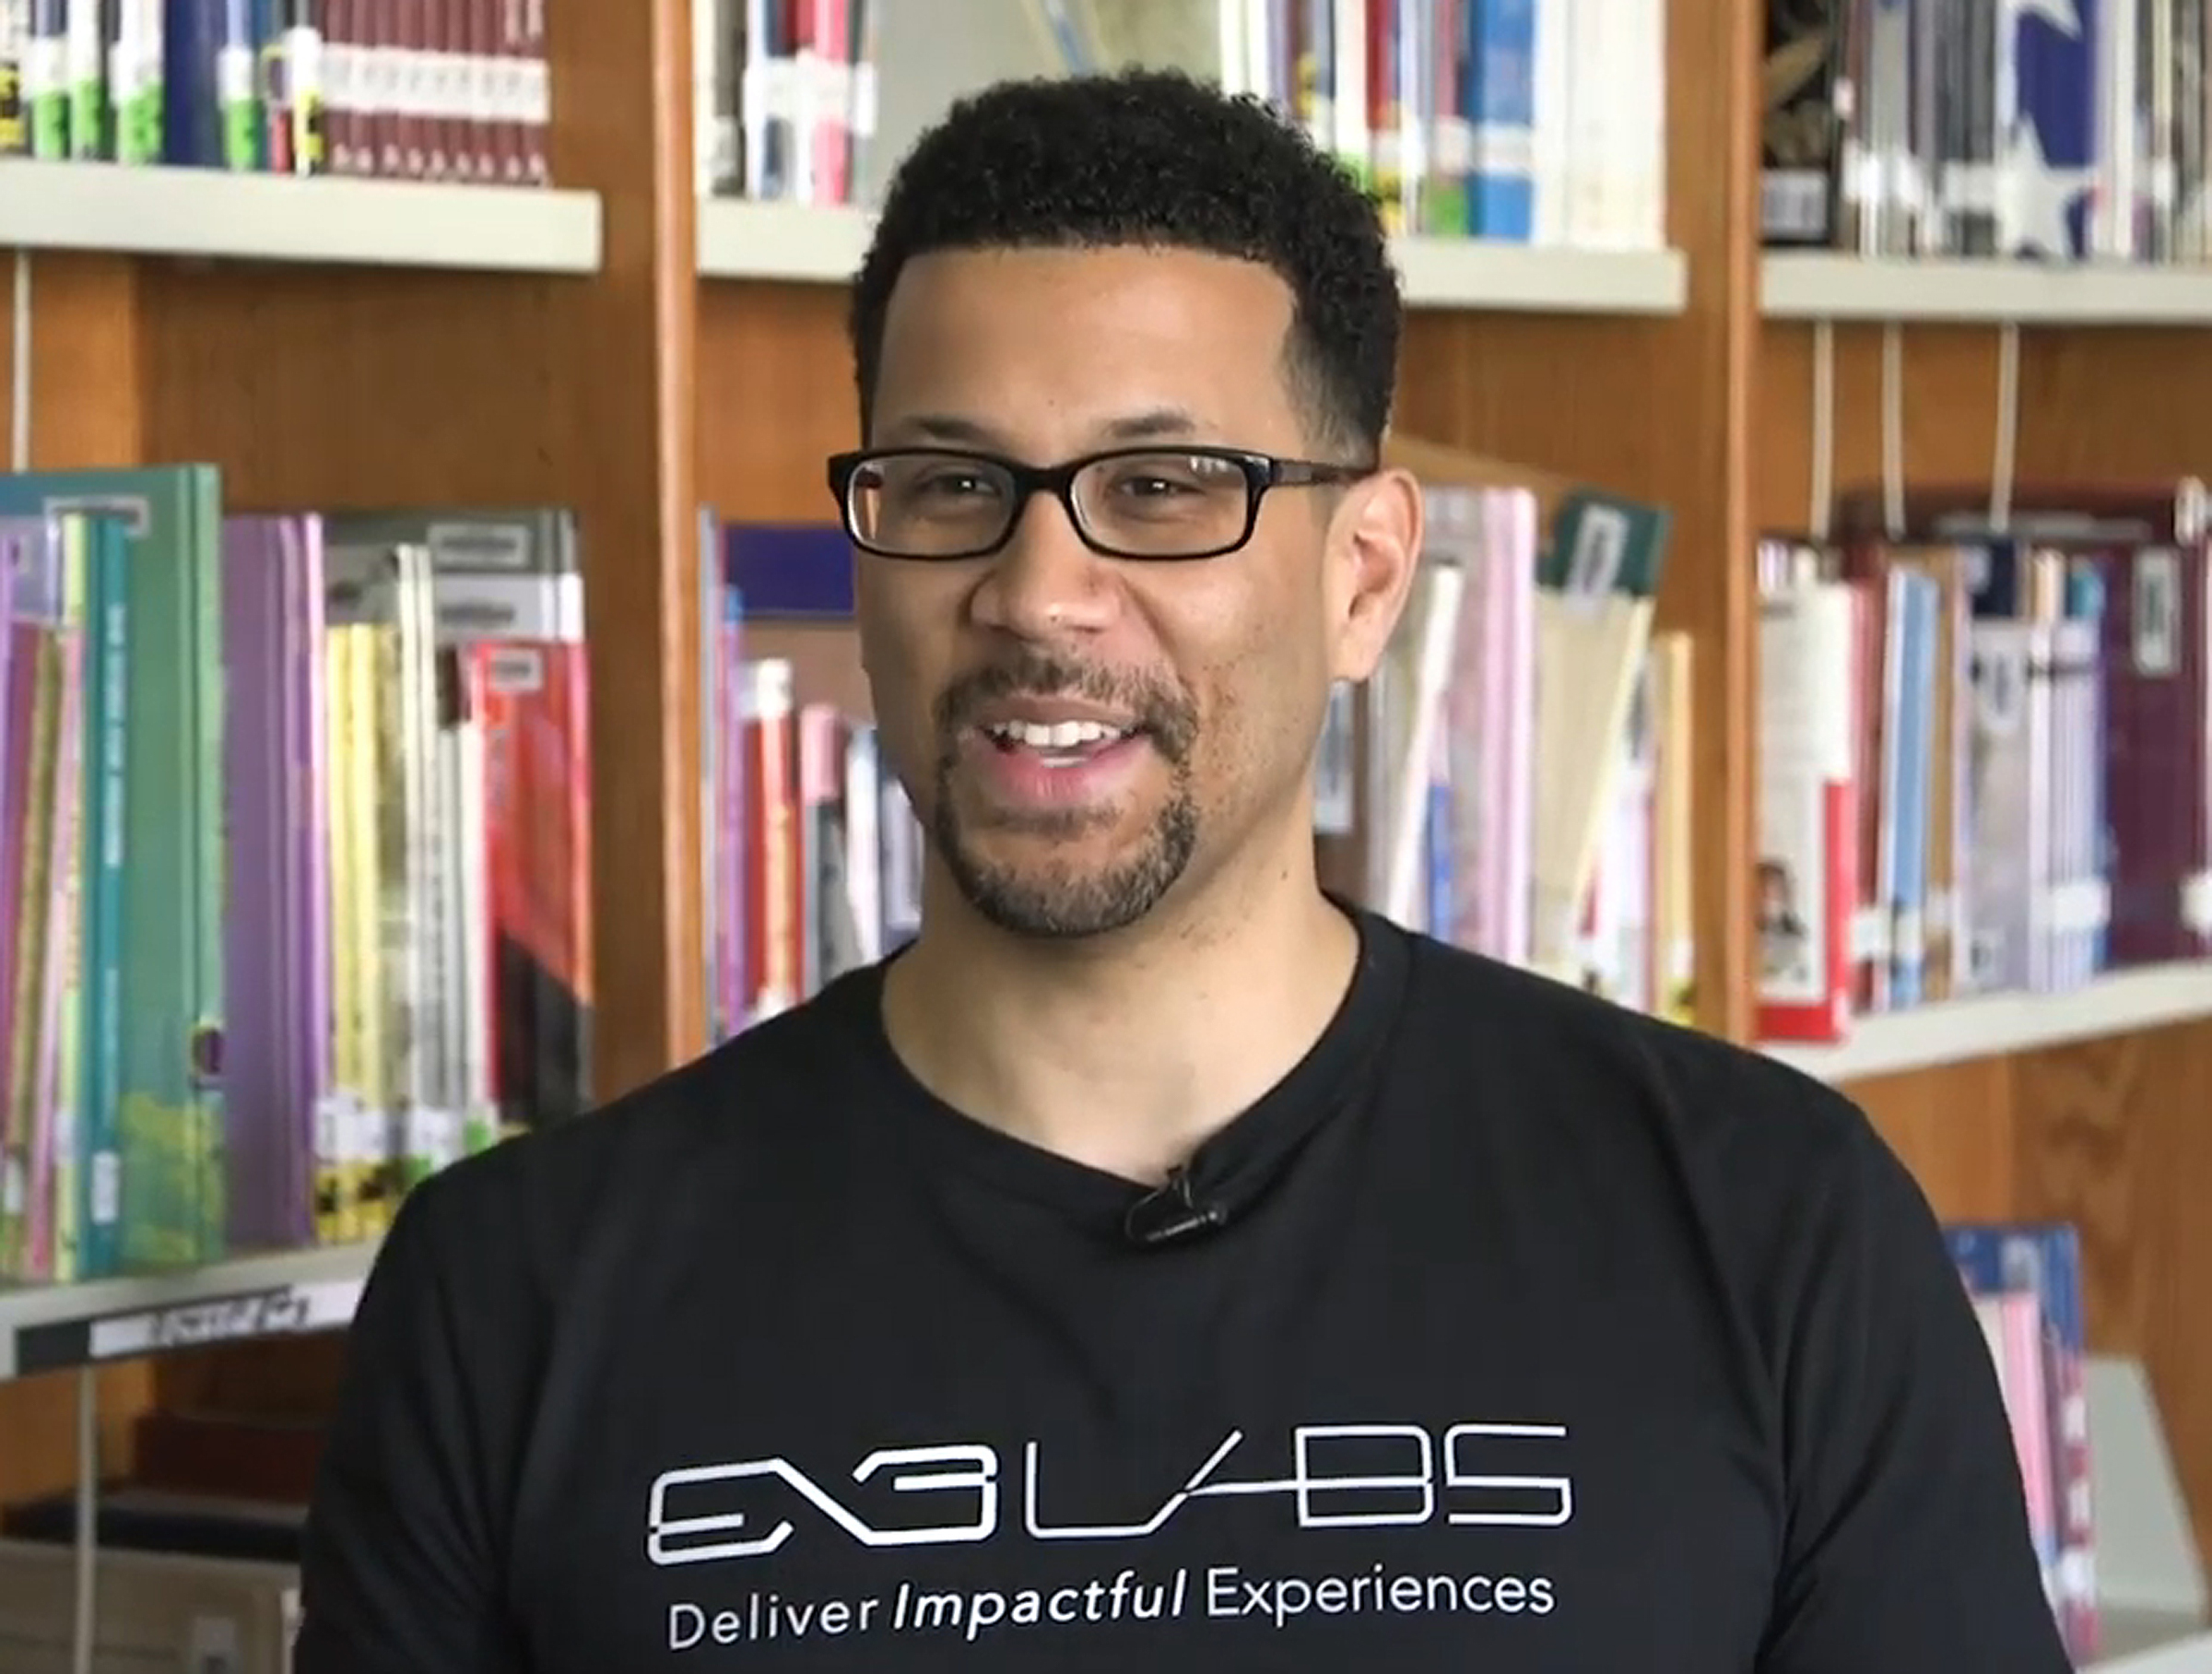 Adam Wisniewski is shown in a company video discussing the dedication in May 2019 of an immersive learning lab at Daniel Boone Elementary School, 6710 N. Washtenaw Ave.